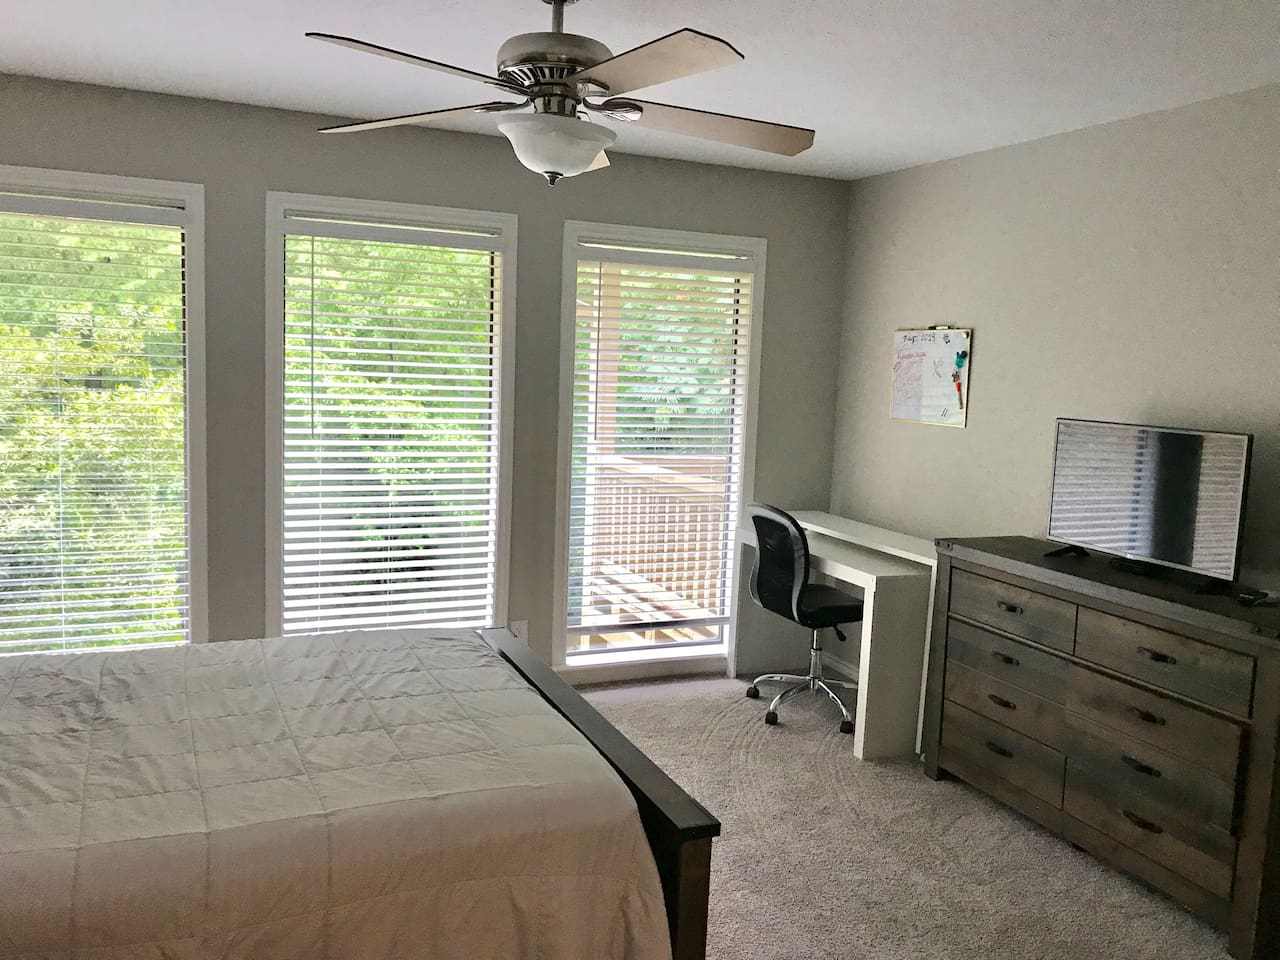 This bedroom overlooks the backyard with 3 big windows. It has a desk with TV.